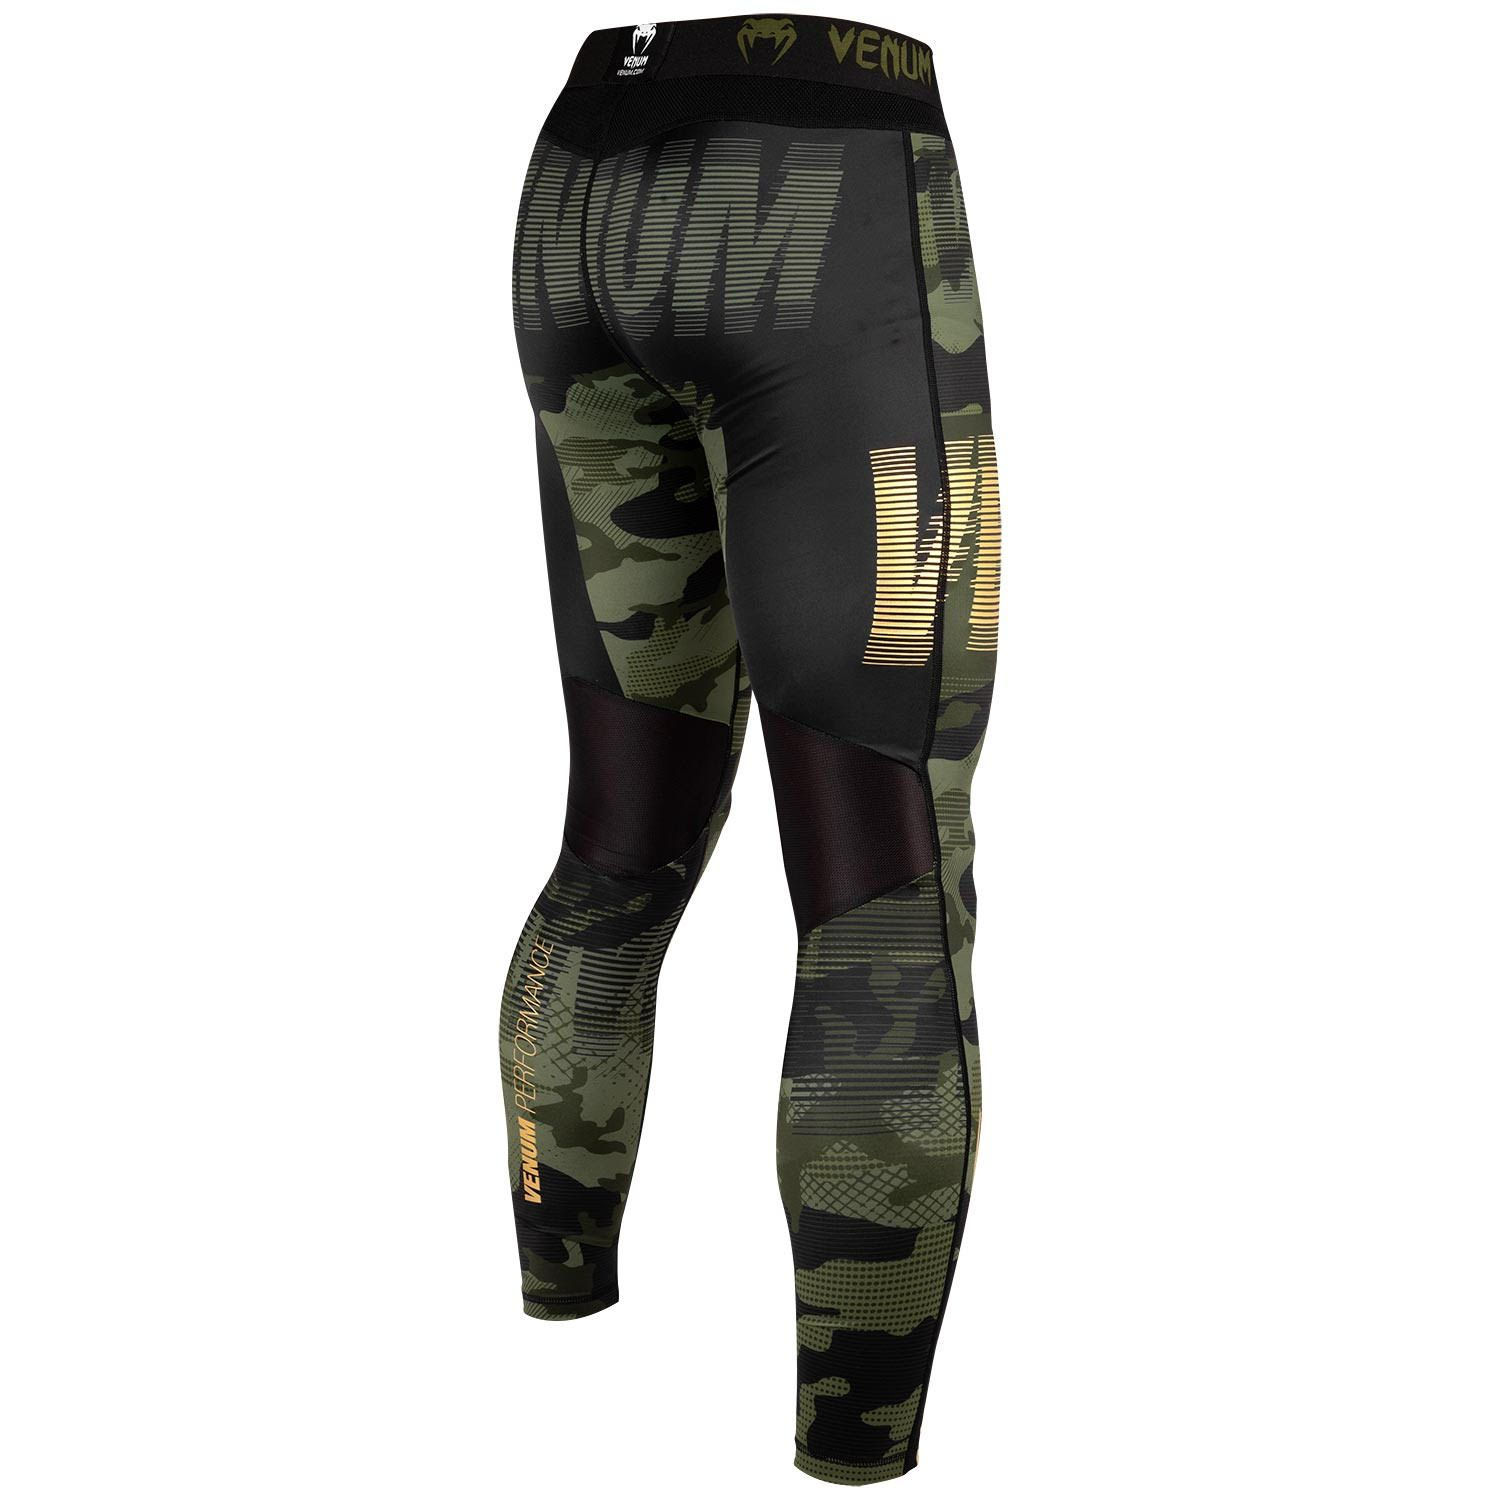 Venum Mens Giant Muay Thai Shorts Black//Forest Camo